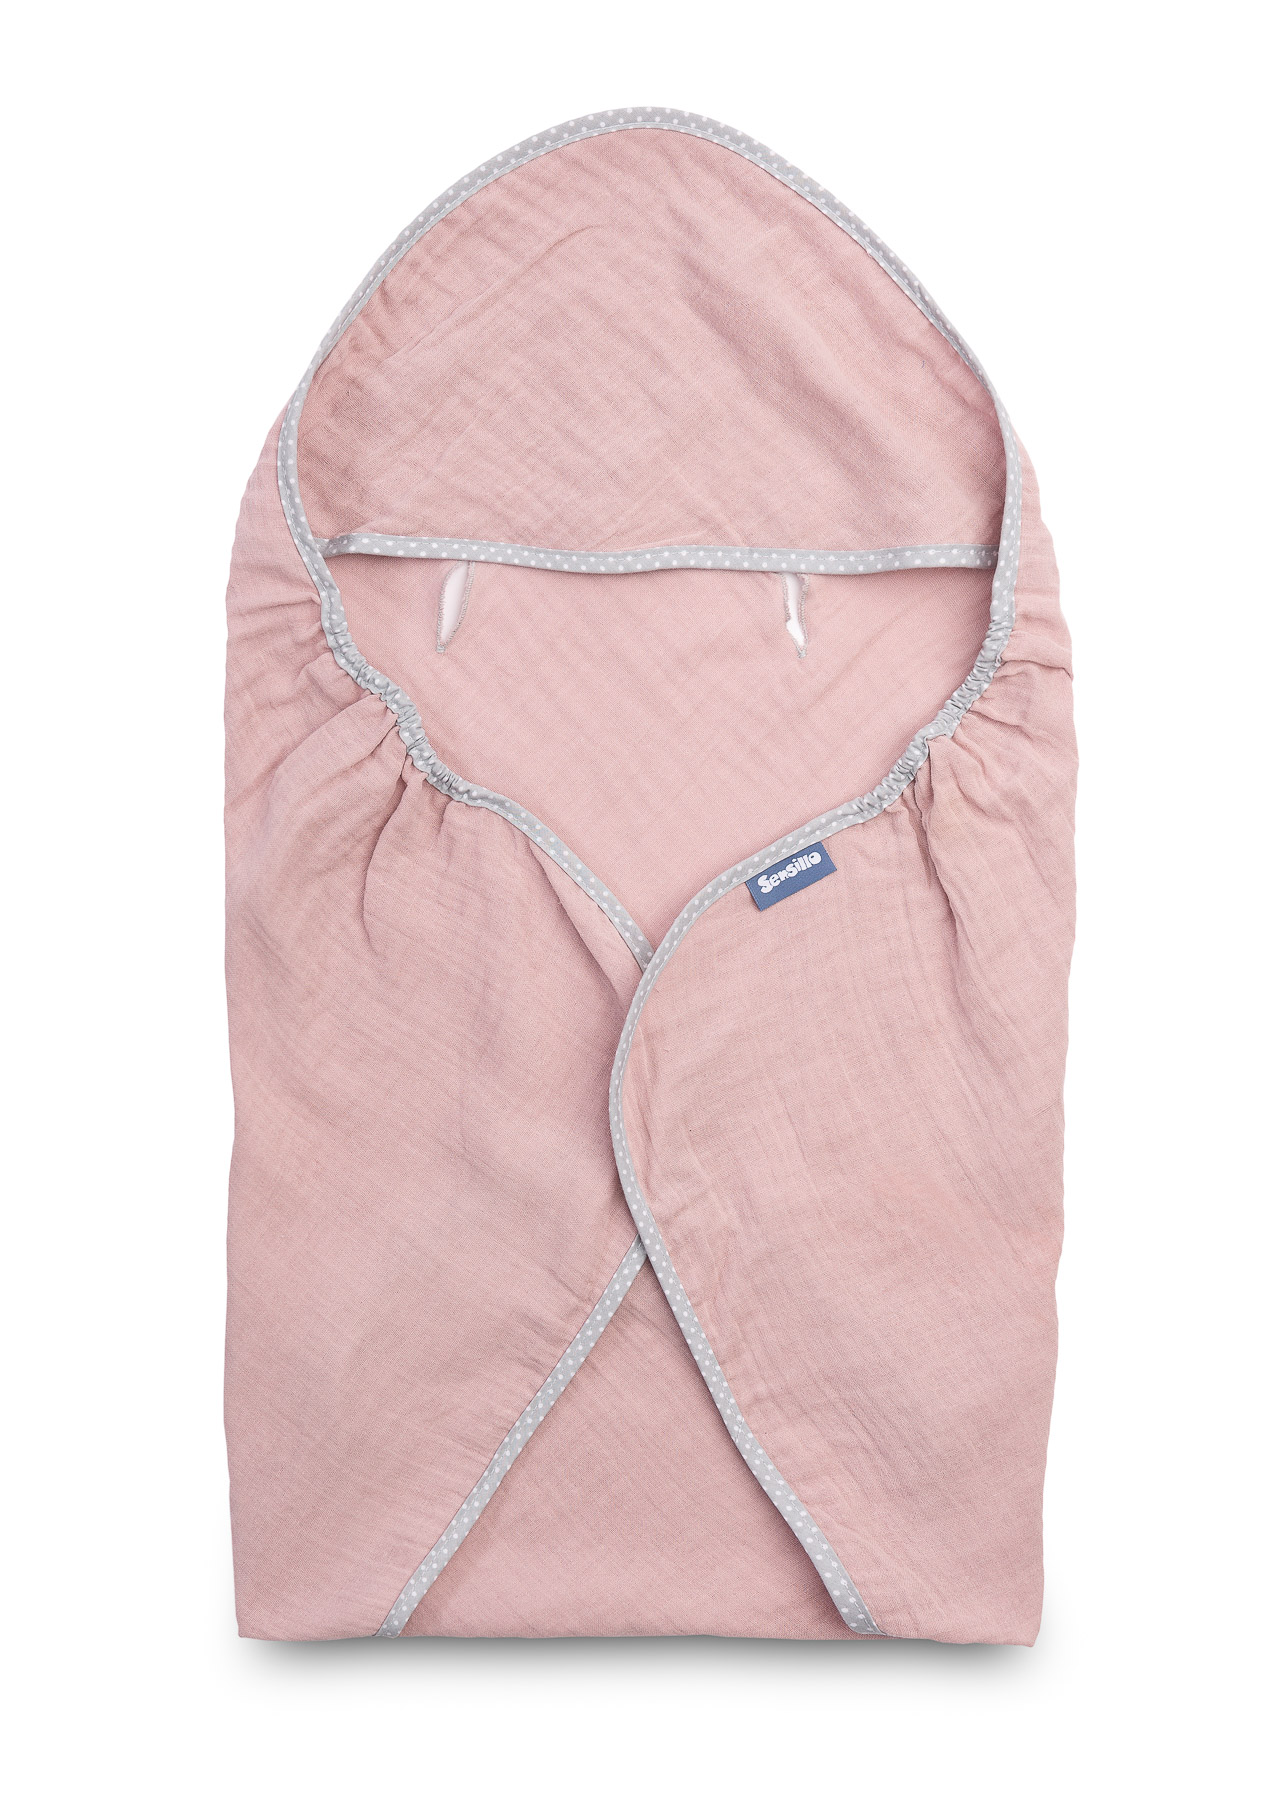 Child seat muslin swaddle blanket for summer – pink